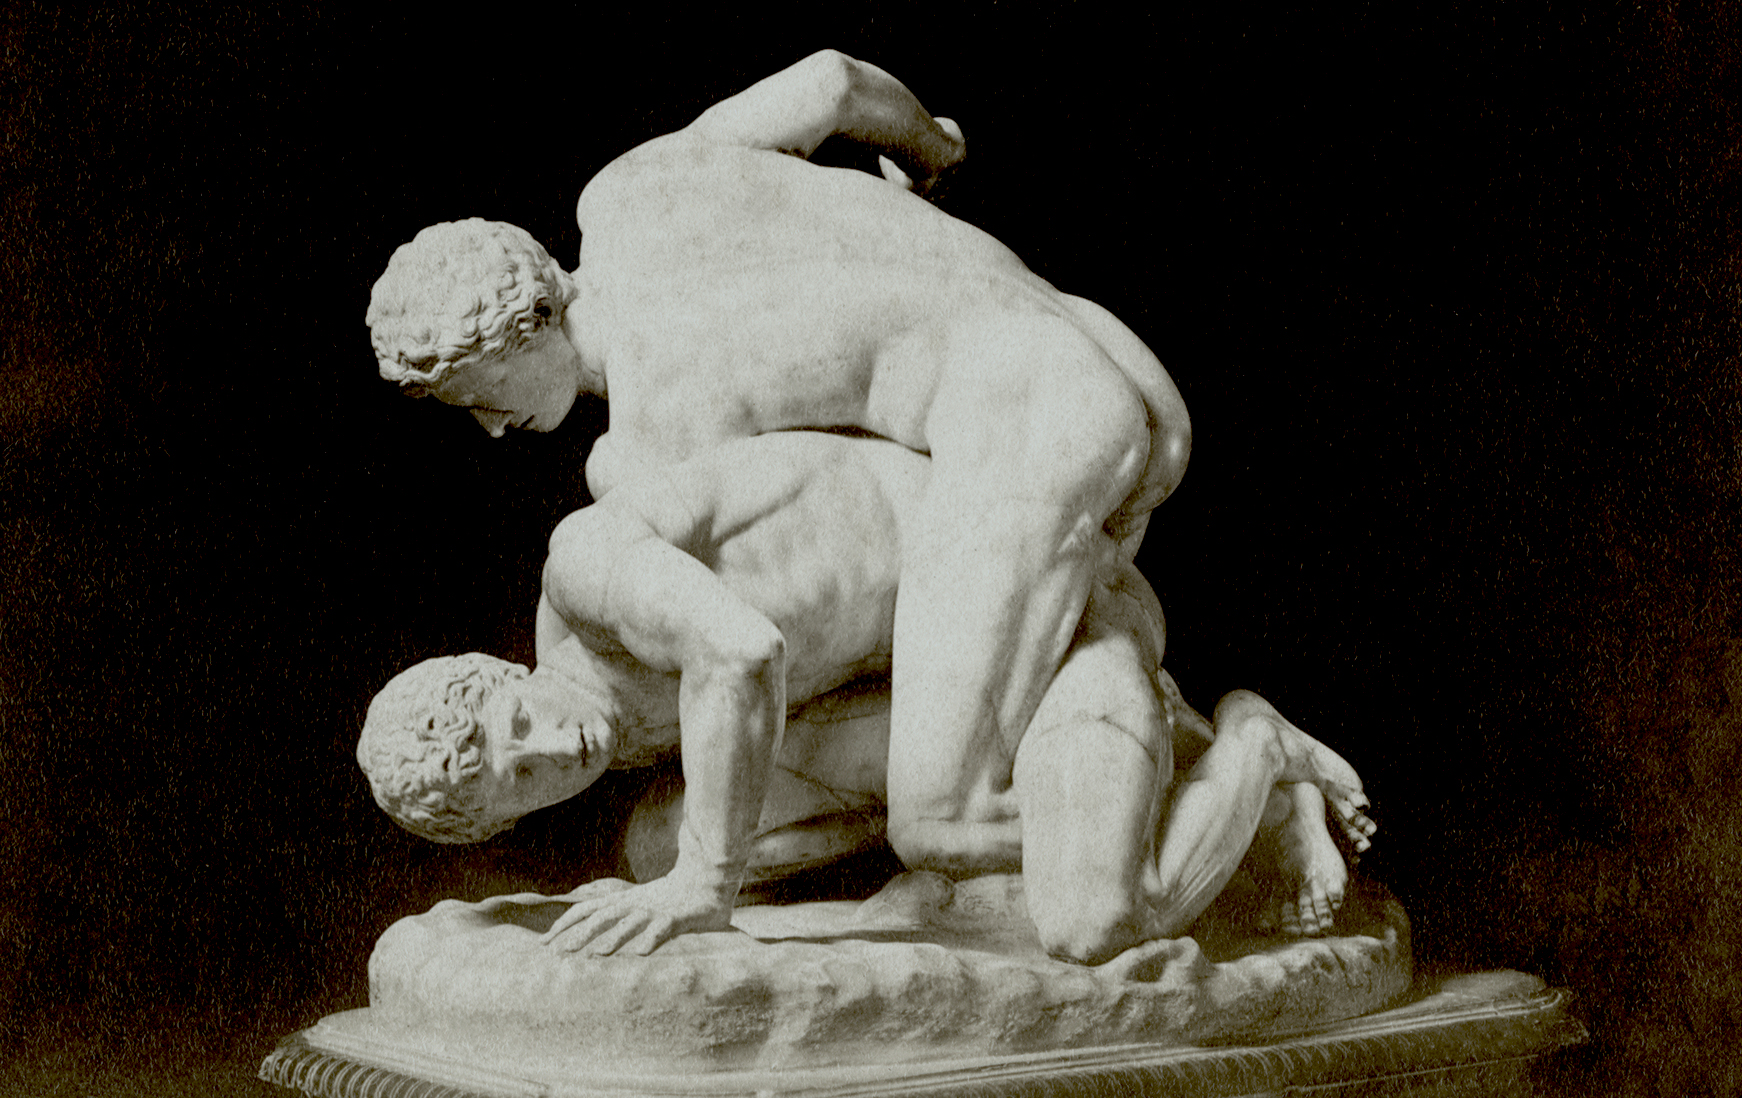 <p><i>The Wrestlers.</i></p><p>Roman copy of original of 3rd c. BCE. Marble.</p><p>Gallerie degli Uffizi, Florence.</p>